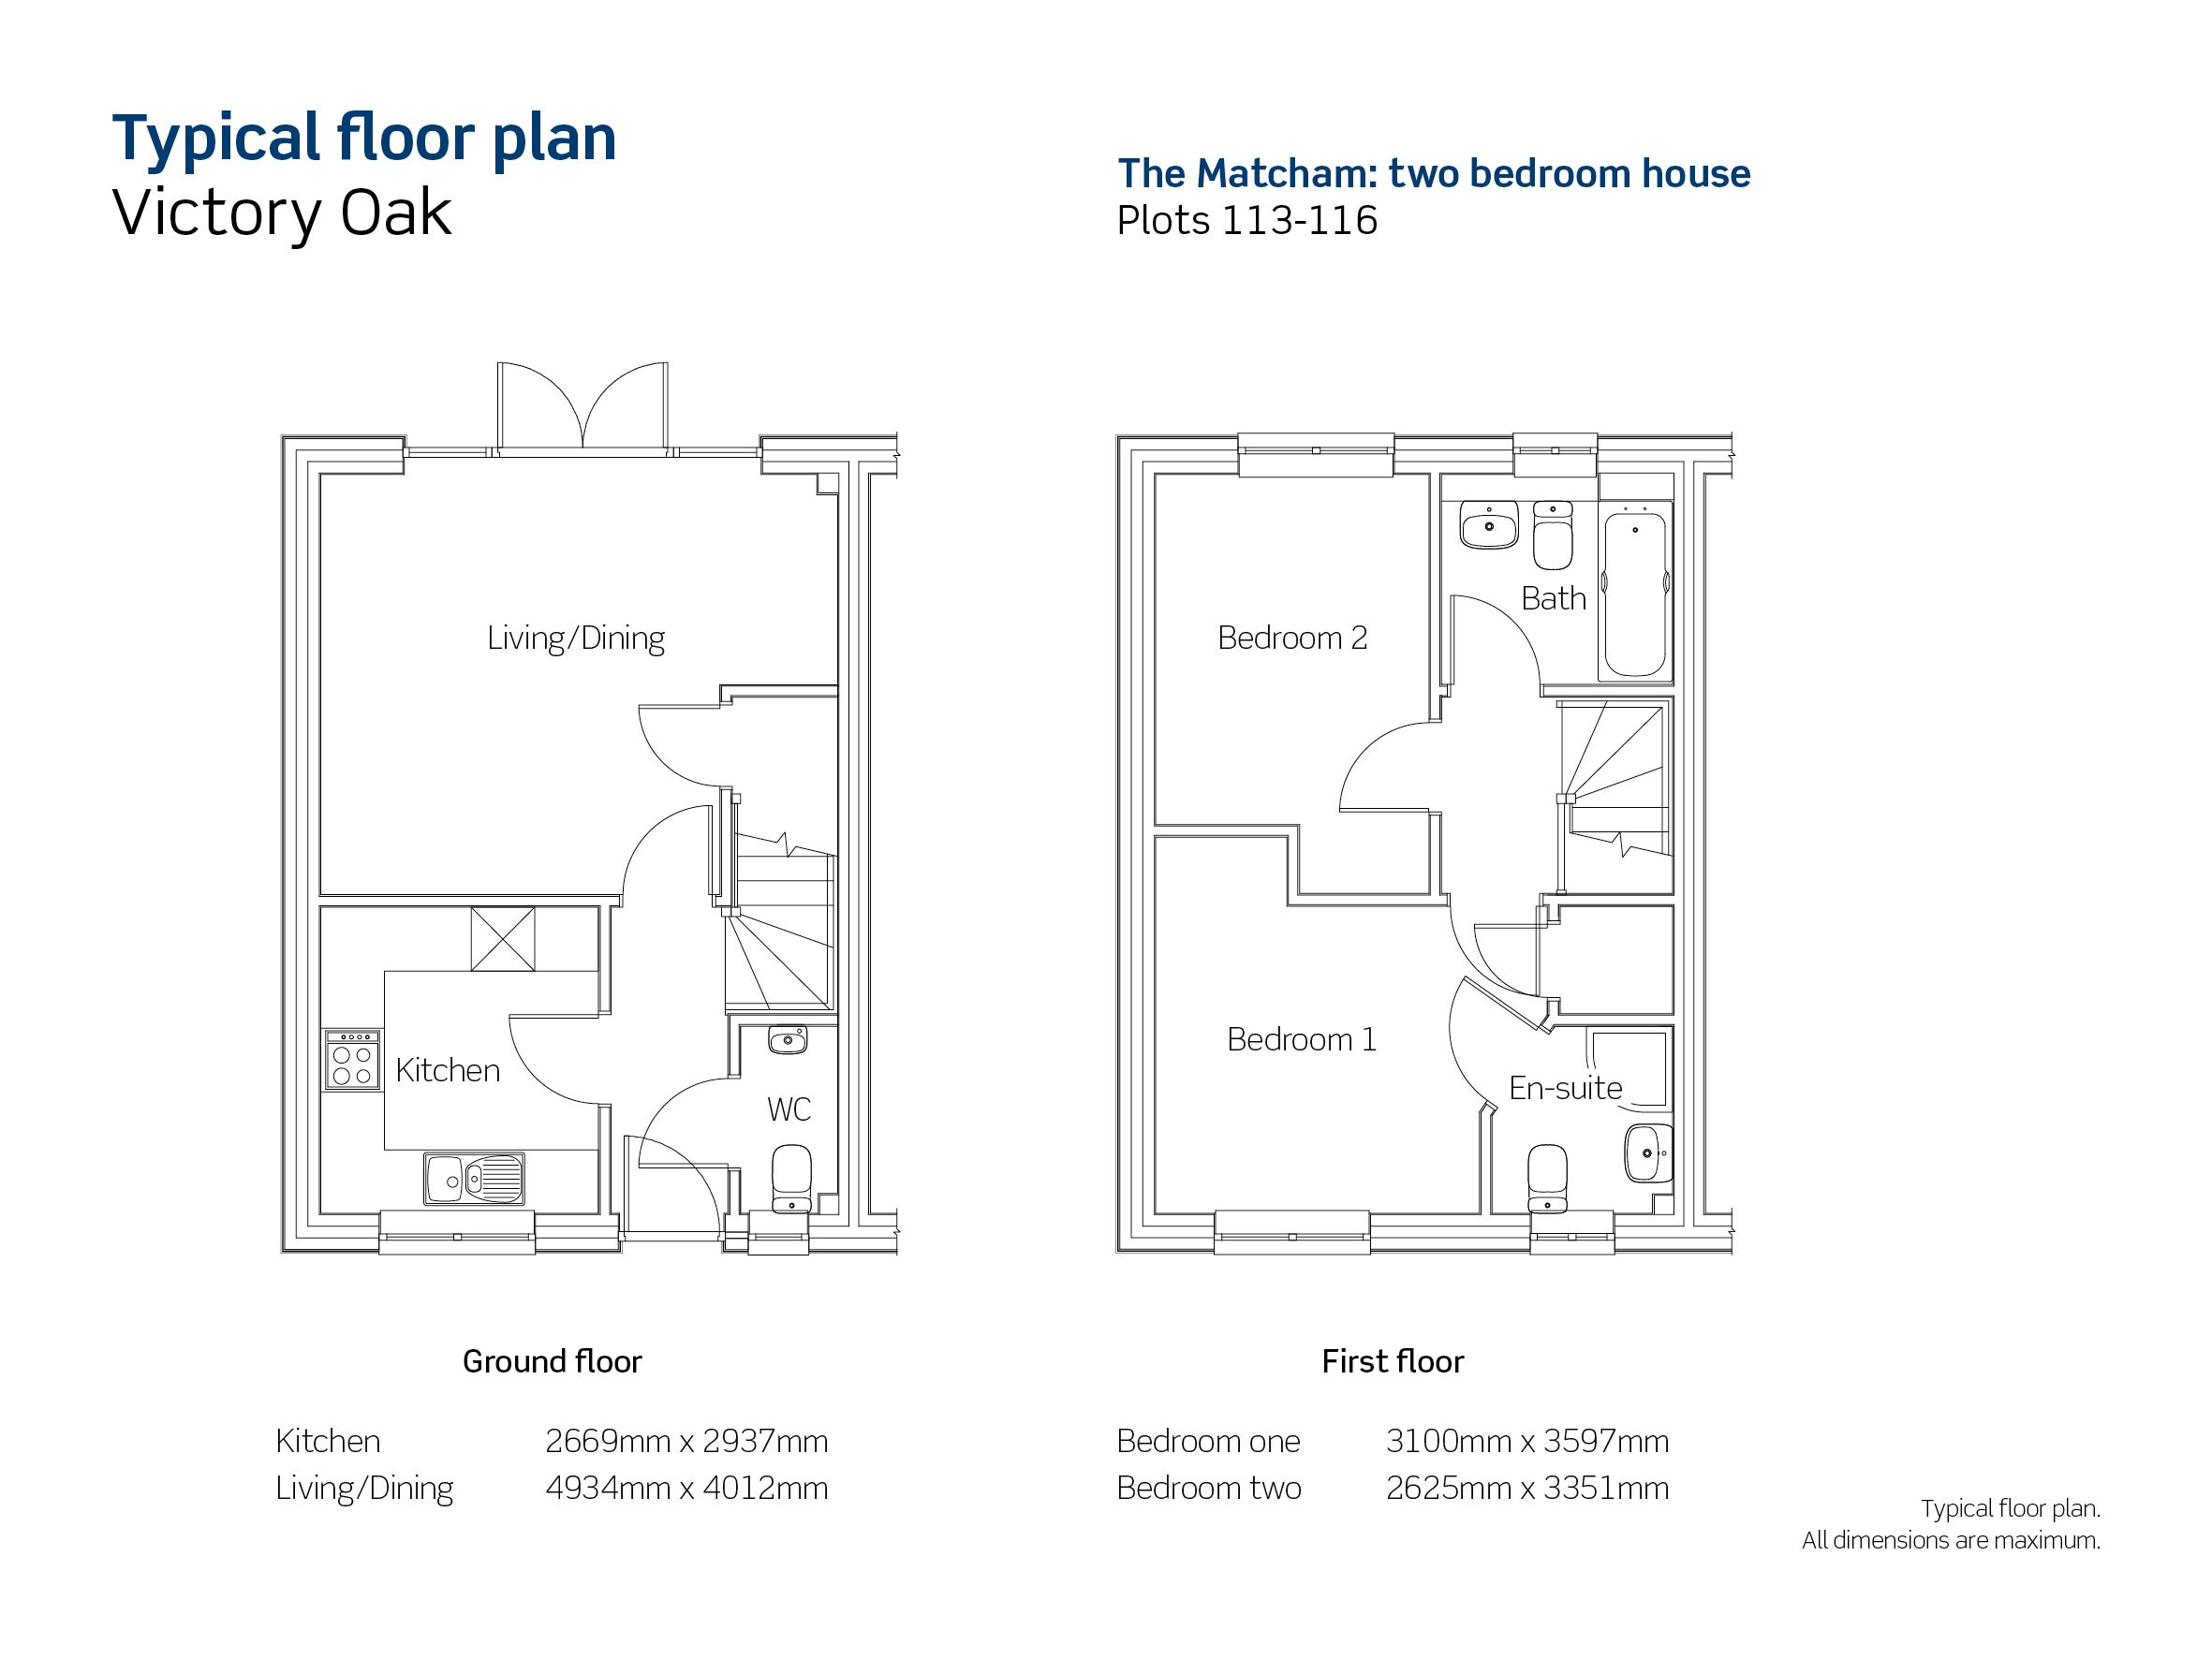 Drawing of Victory Oak The Matcham floor plan